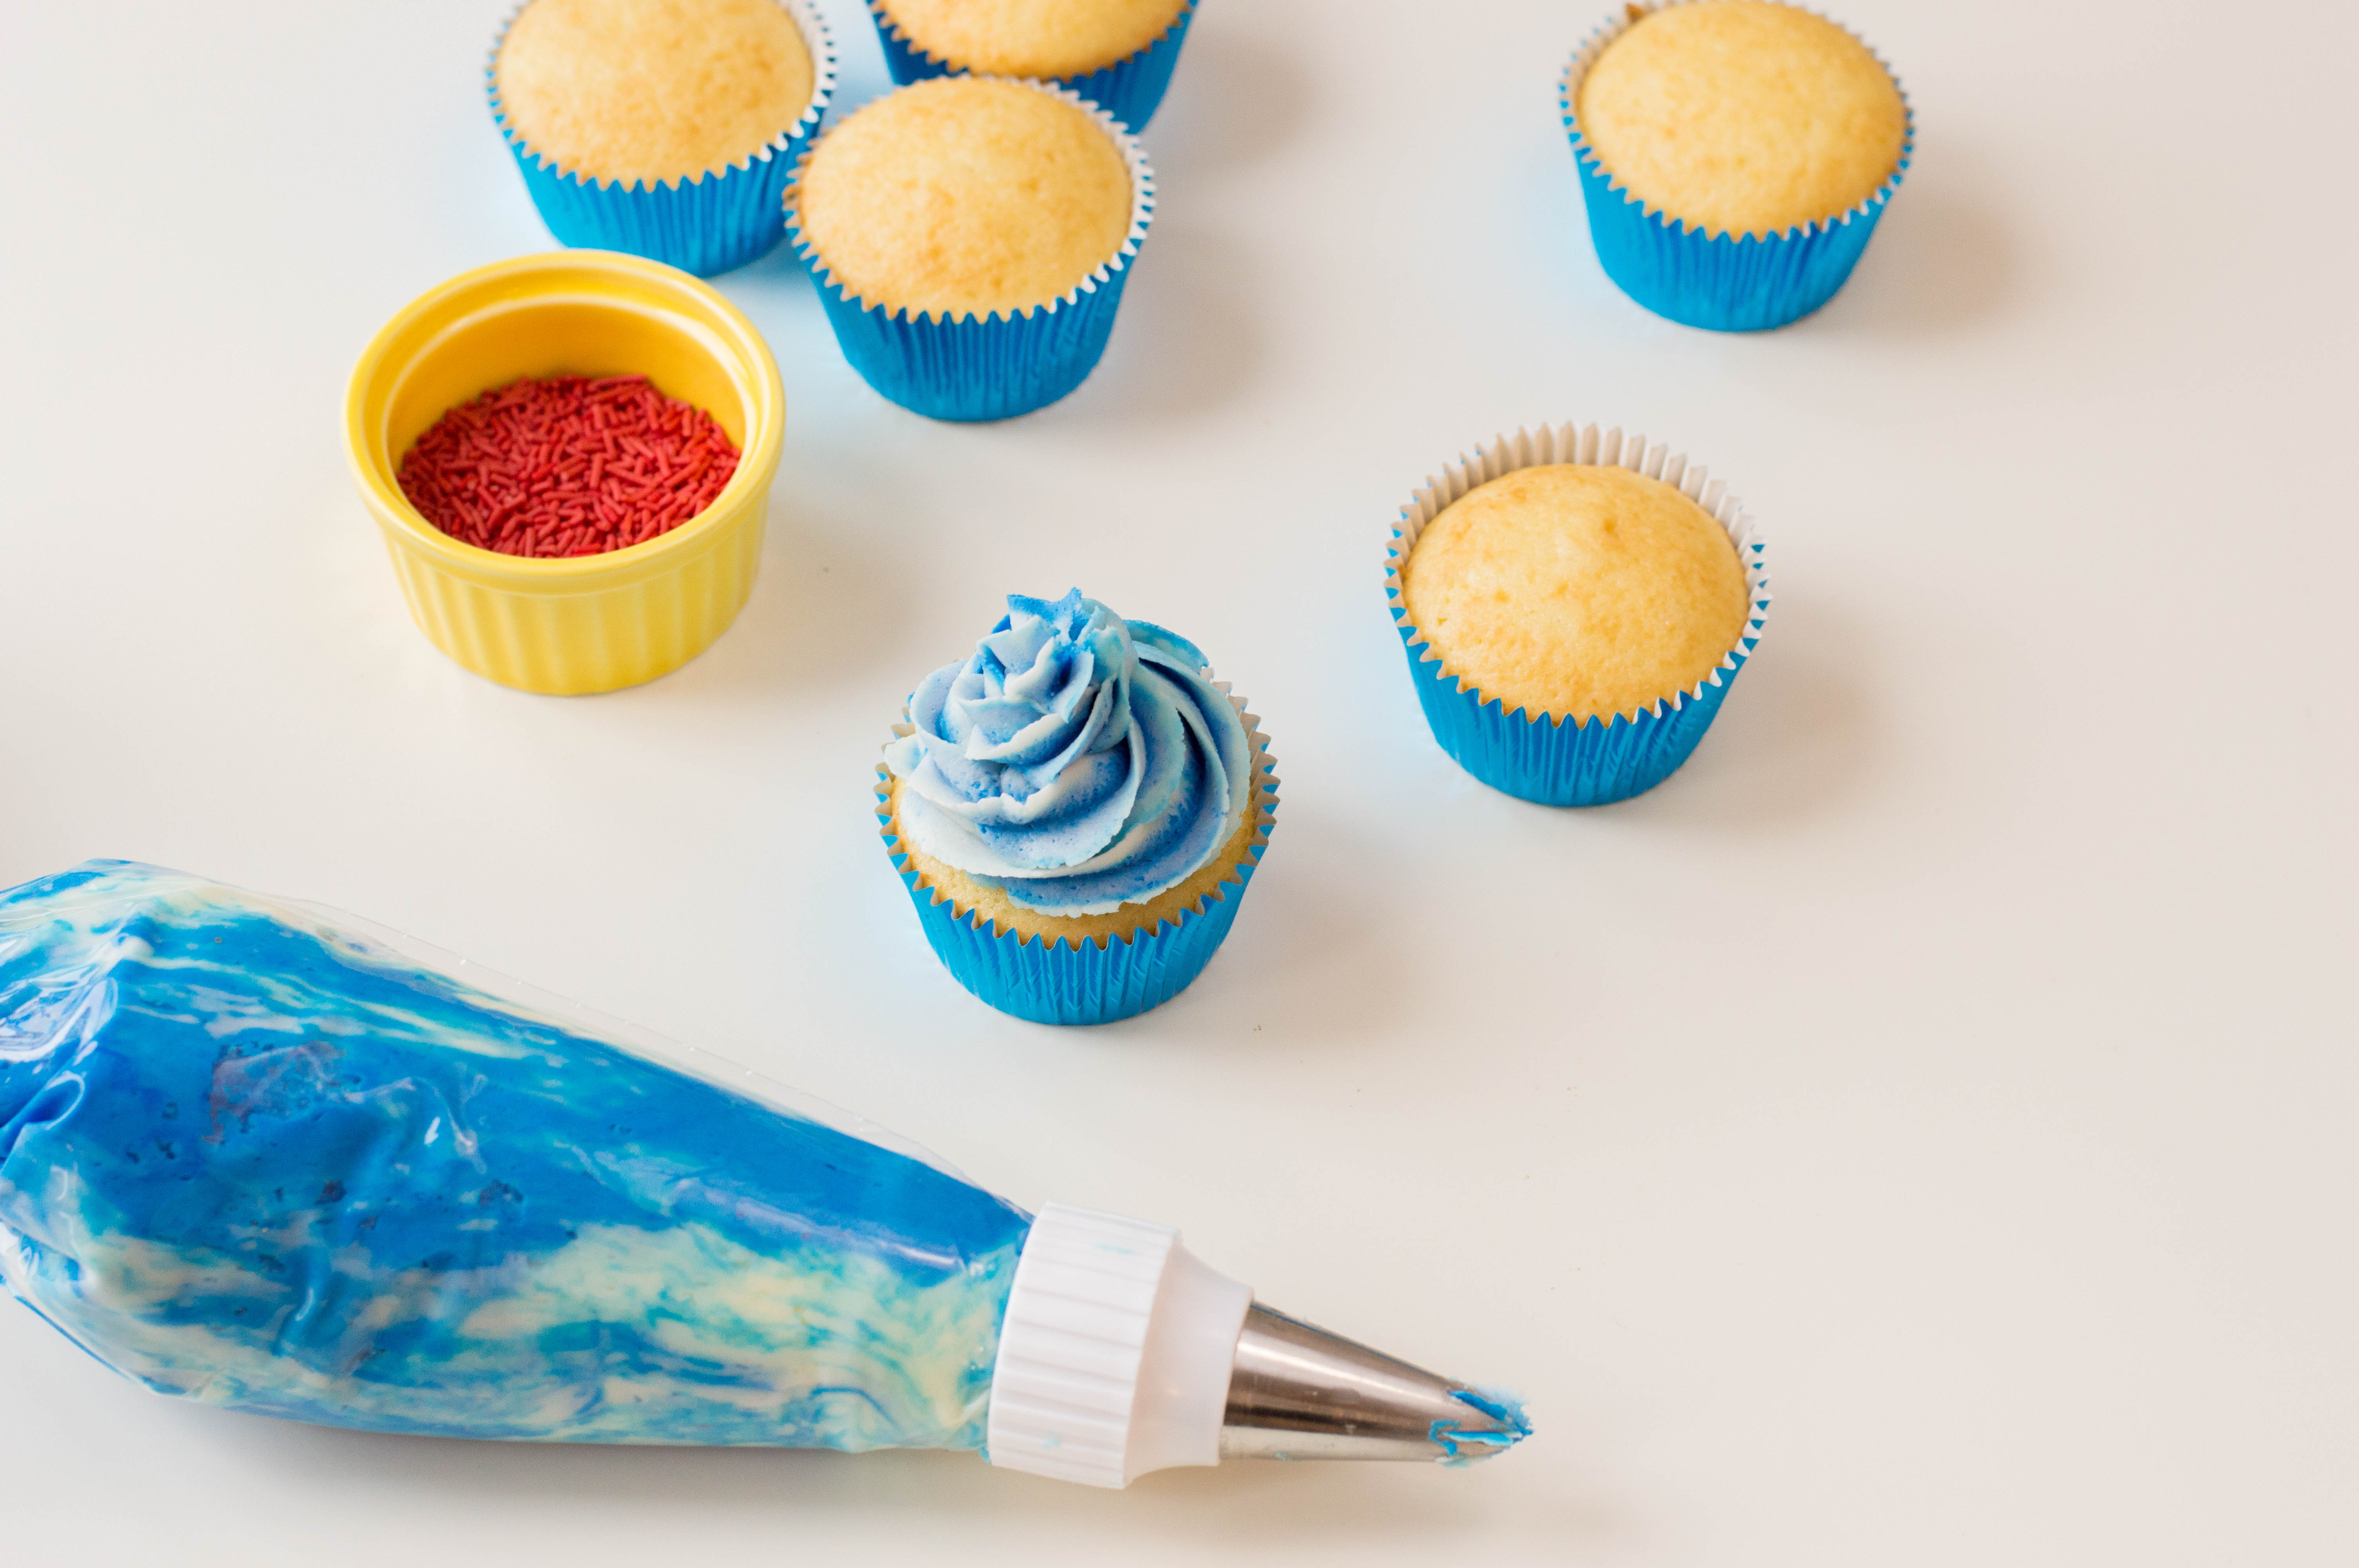 Decorating 4th of july themed cupcakes